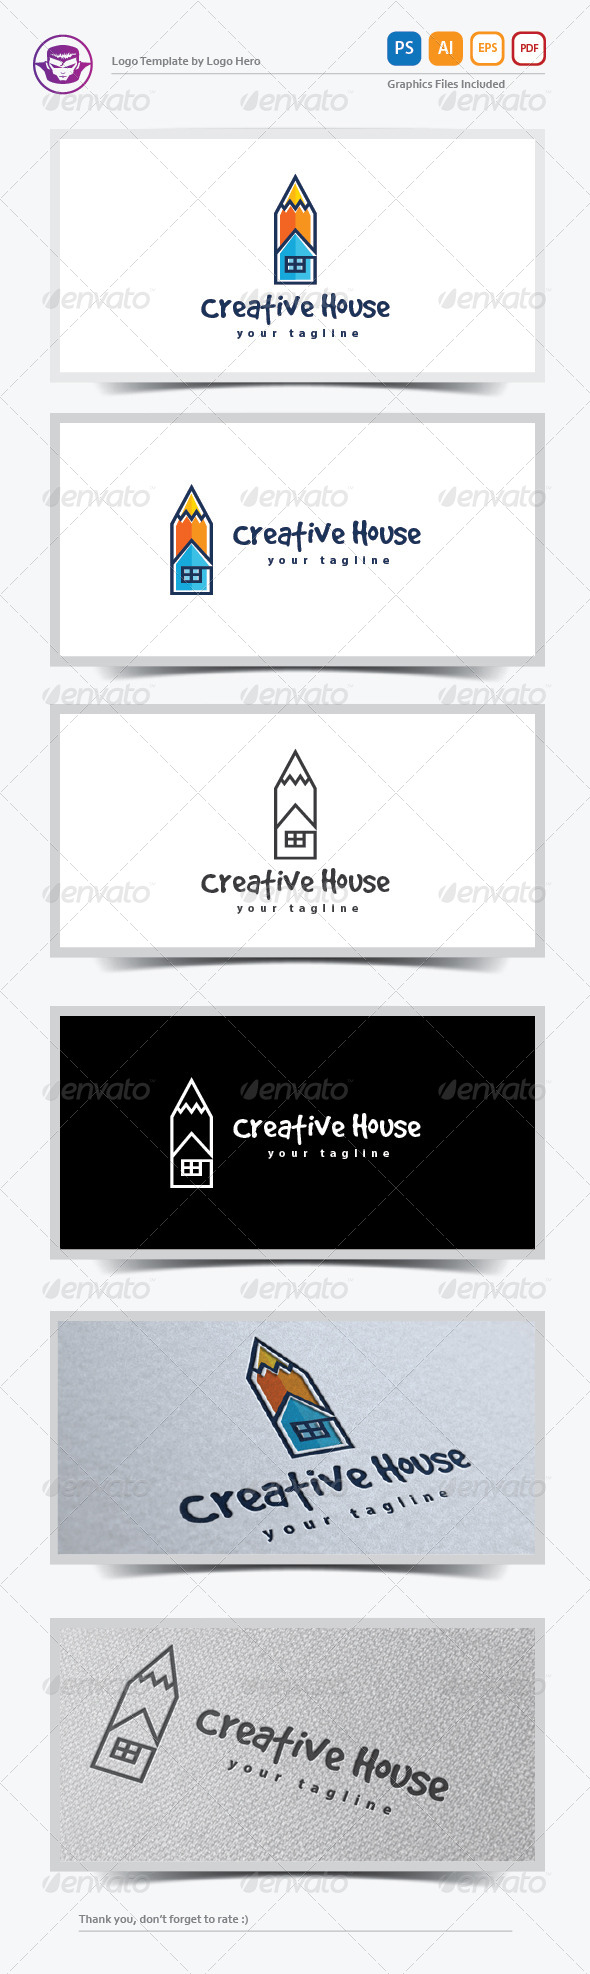 GraphicRiver Creative House Logo Template 8151024